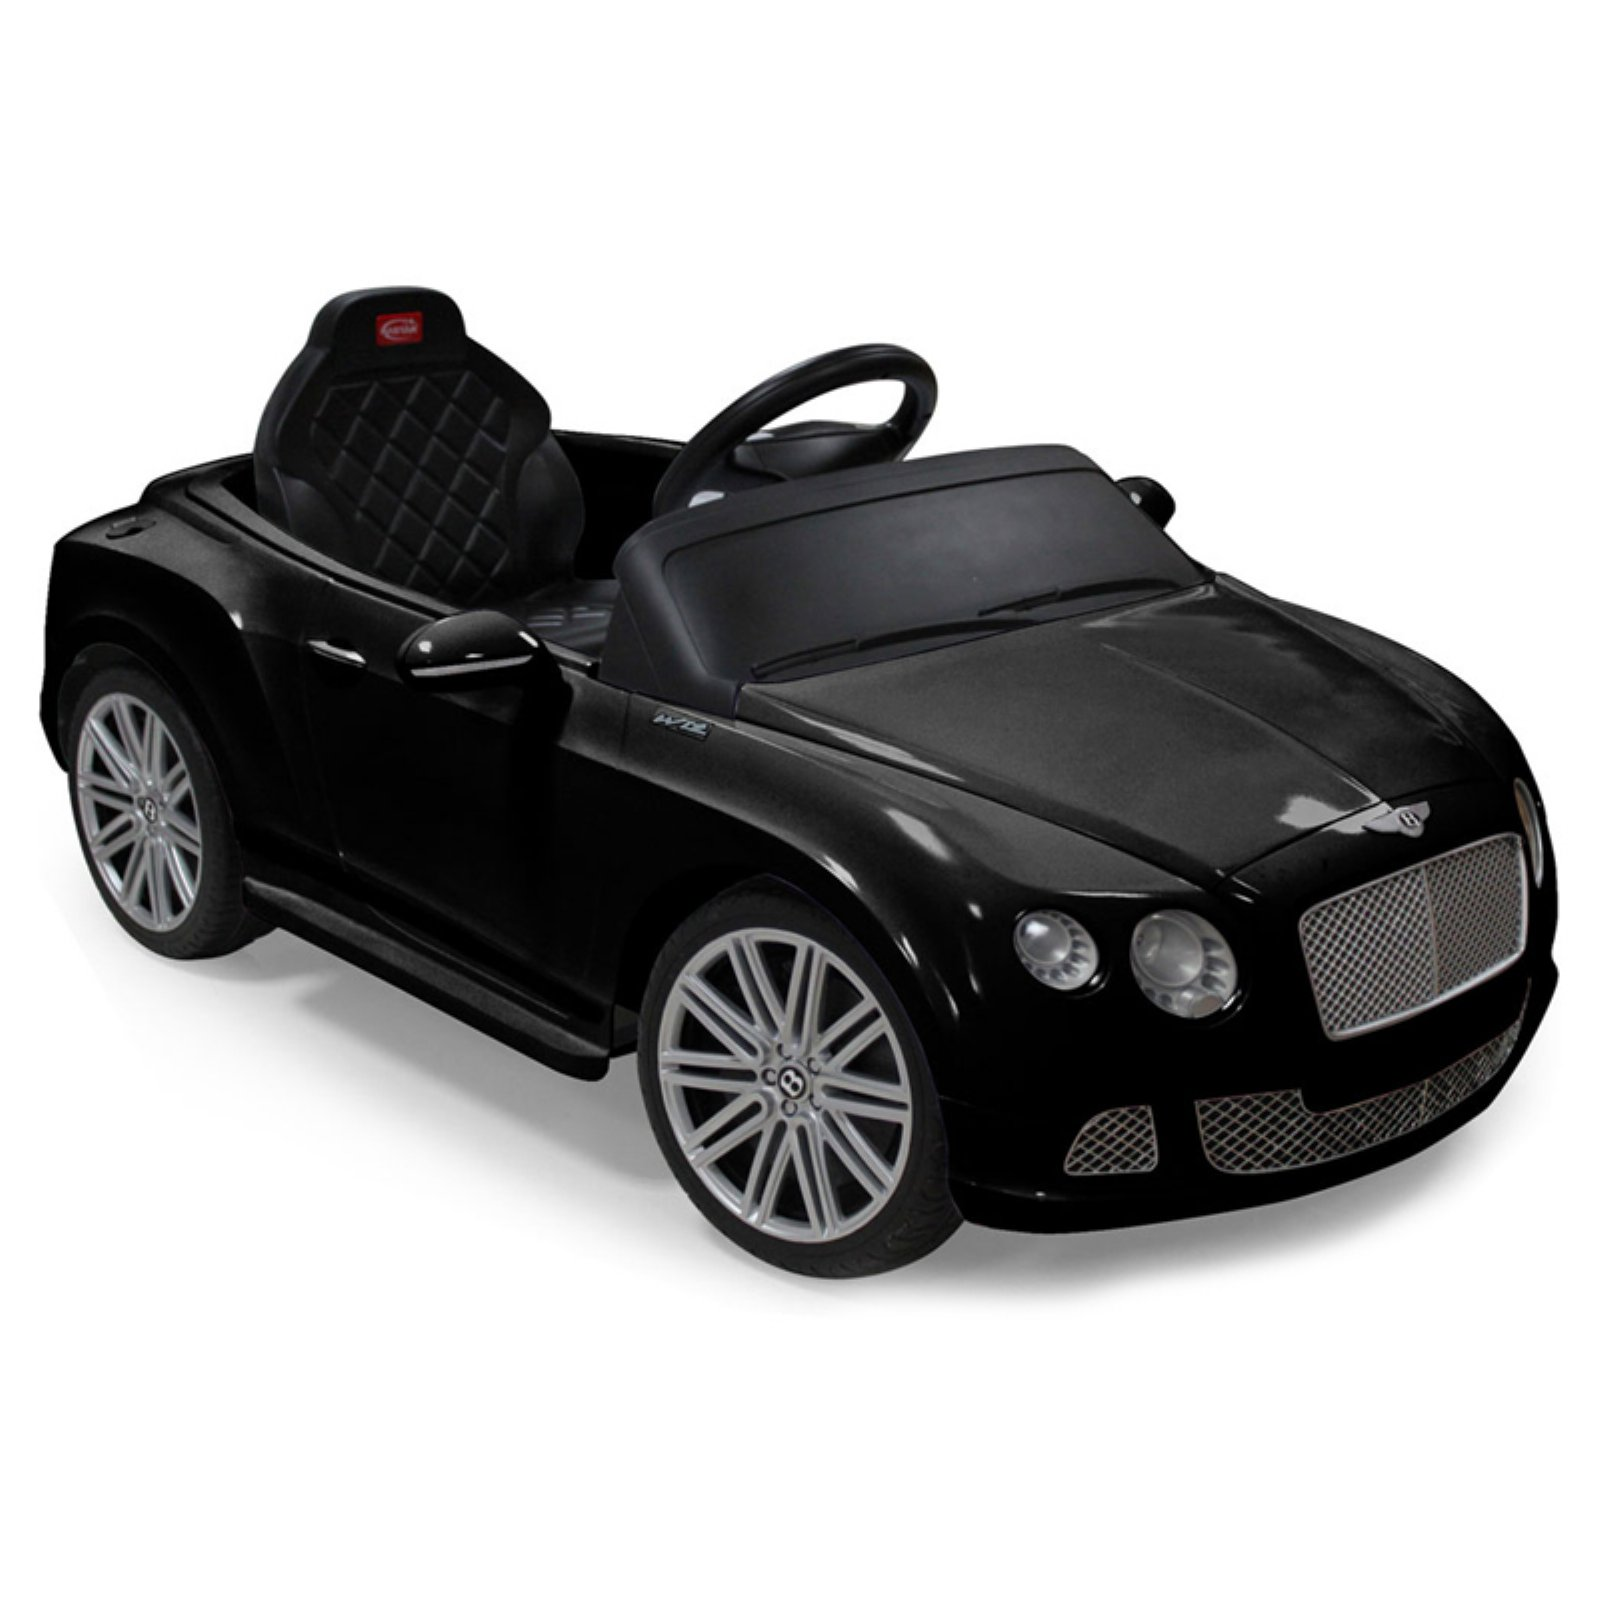 Rastar Bentley GTC Remote-Controlled 12V Battery Powered Ride-On Car, Black by Rastar